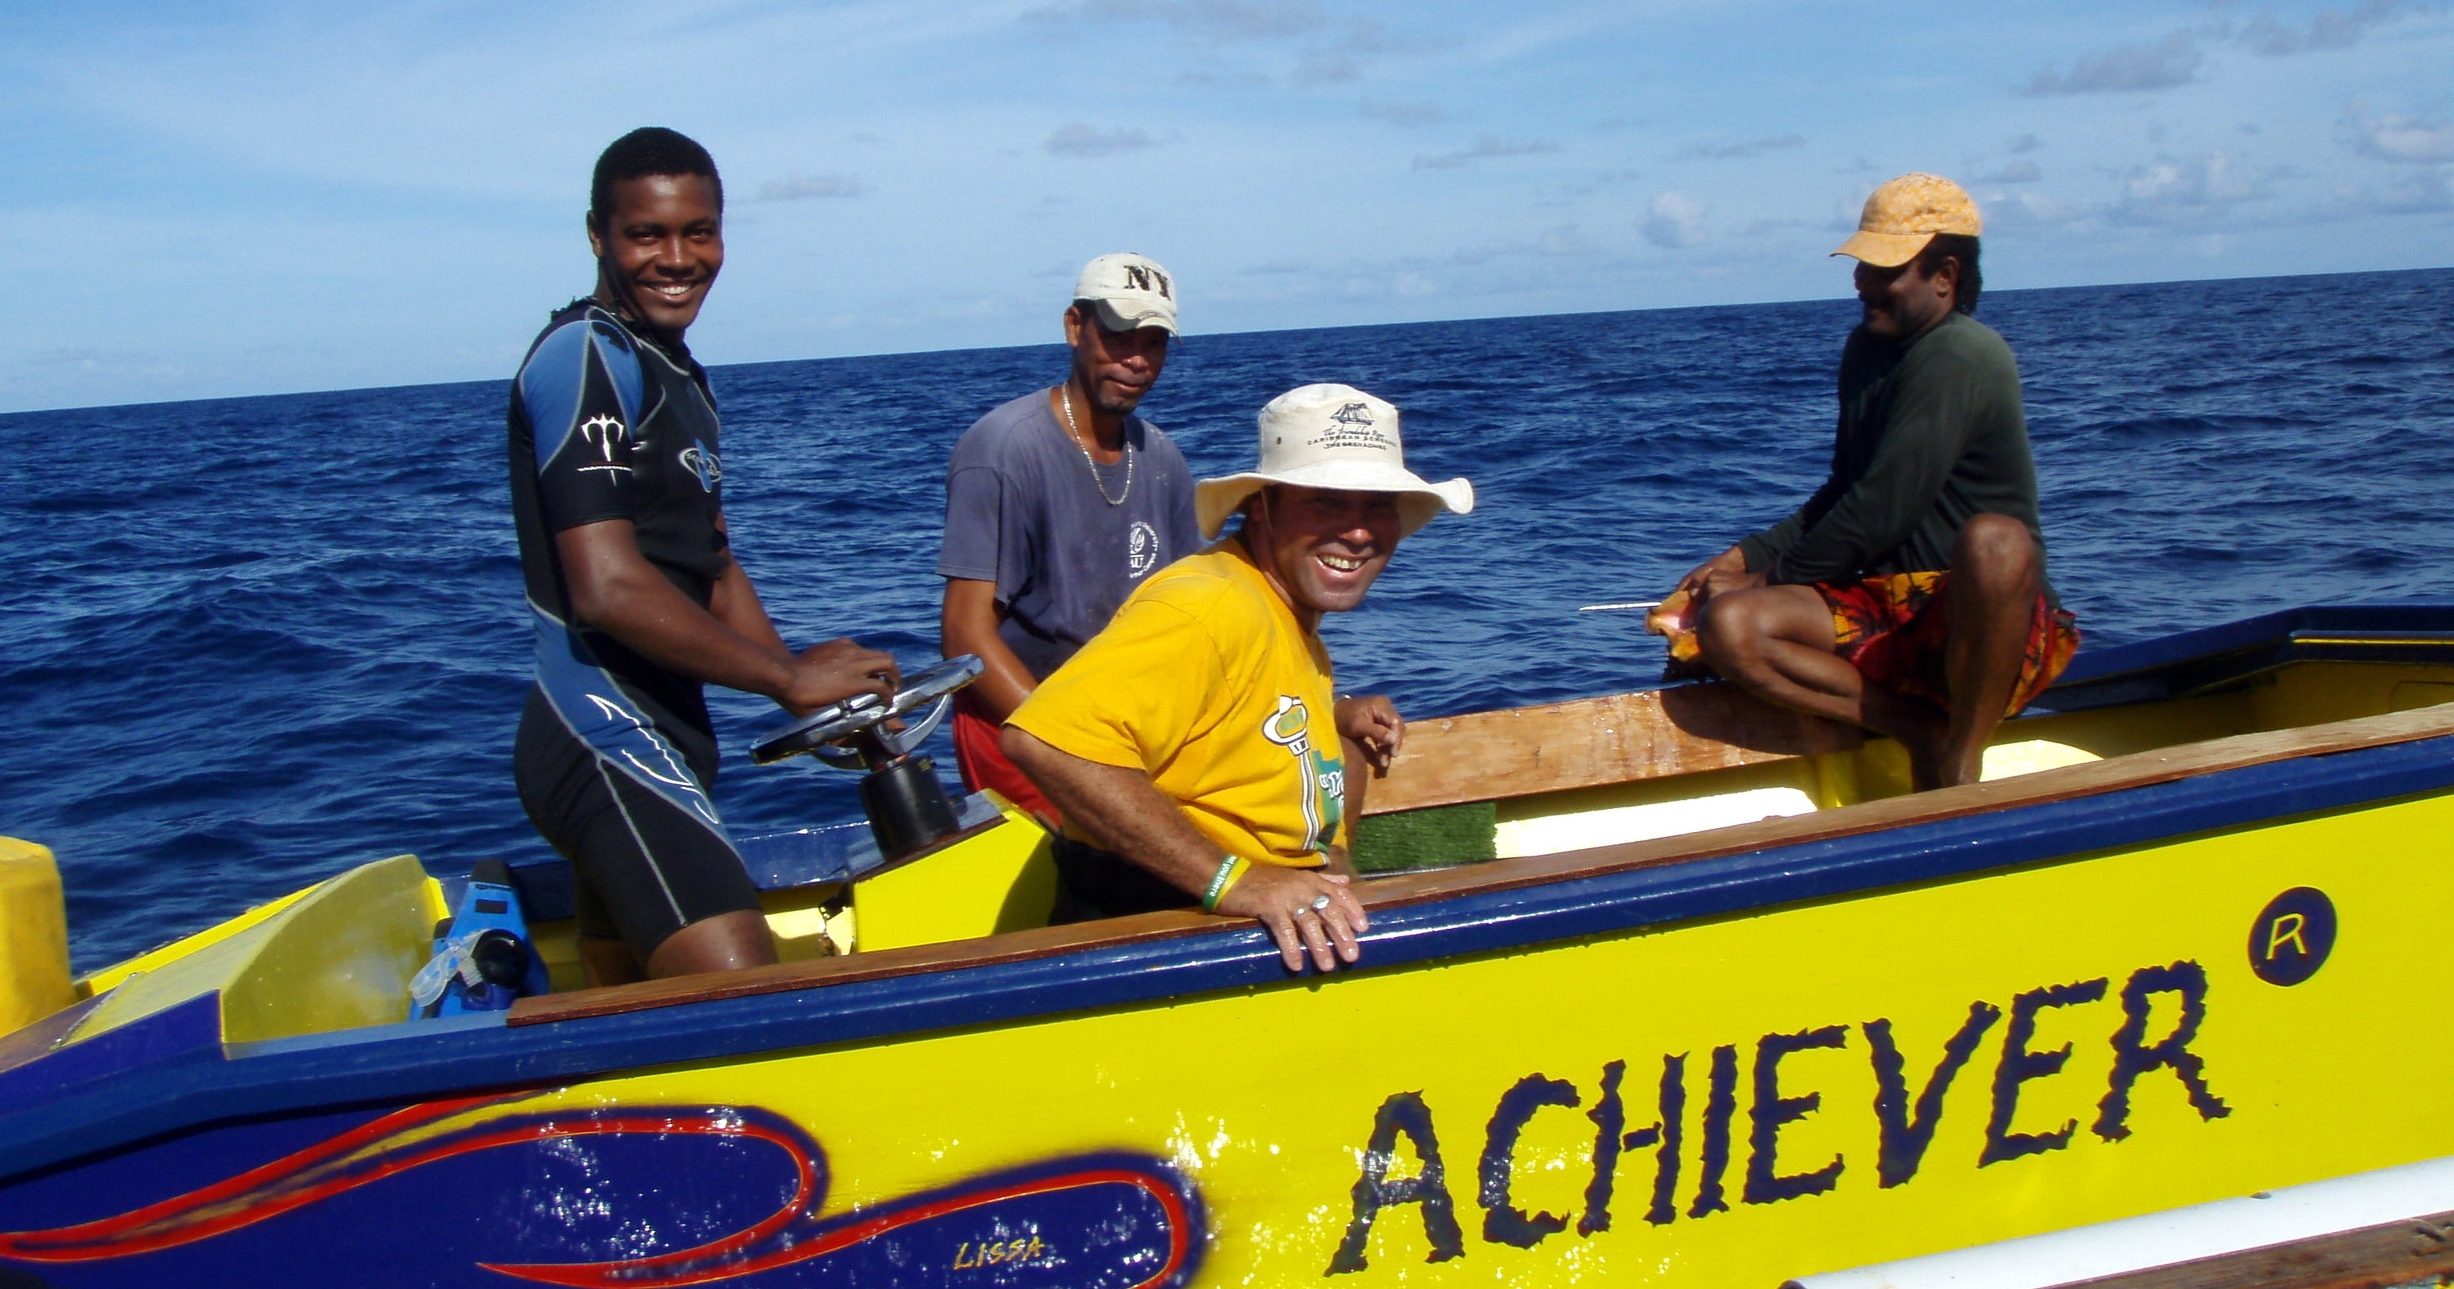 Kim Baldwin engaged fishers across the Grenadines to map their local knowledge of marine habitats, resources, space-uses and fishing grounds as part of her PGIS research.